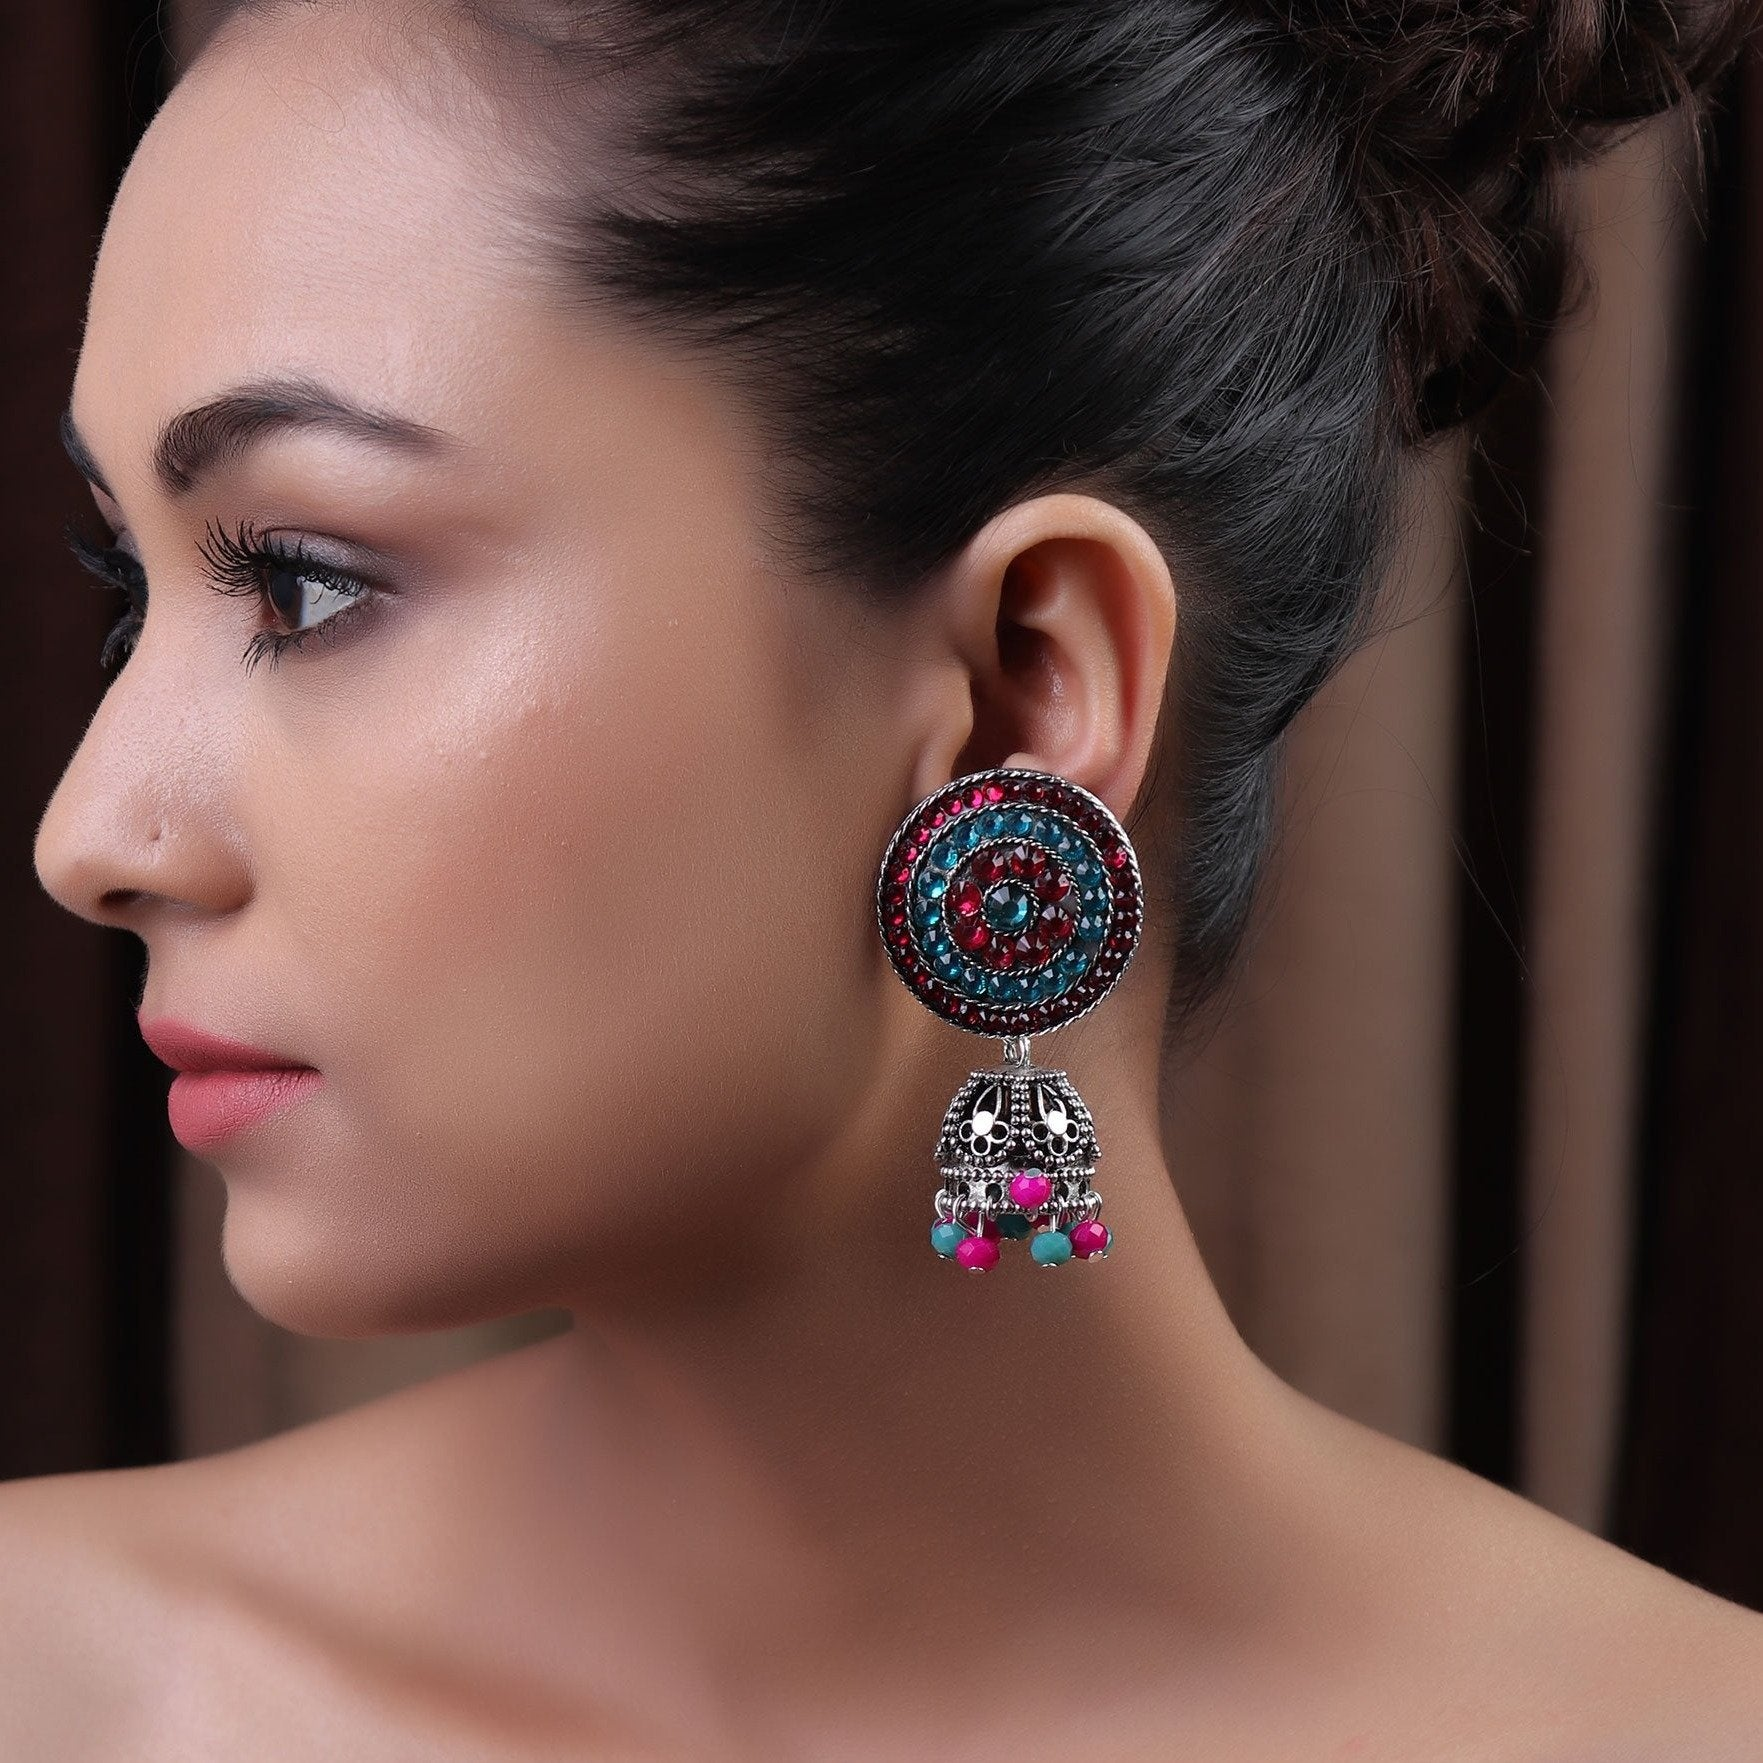 Earrings,The Nizam's Earring in Turquoise Blue & Pink - Cippele Multi Store